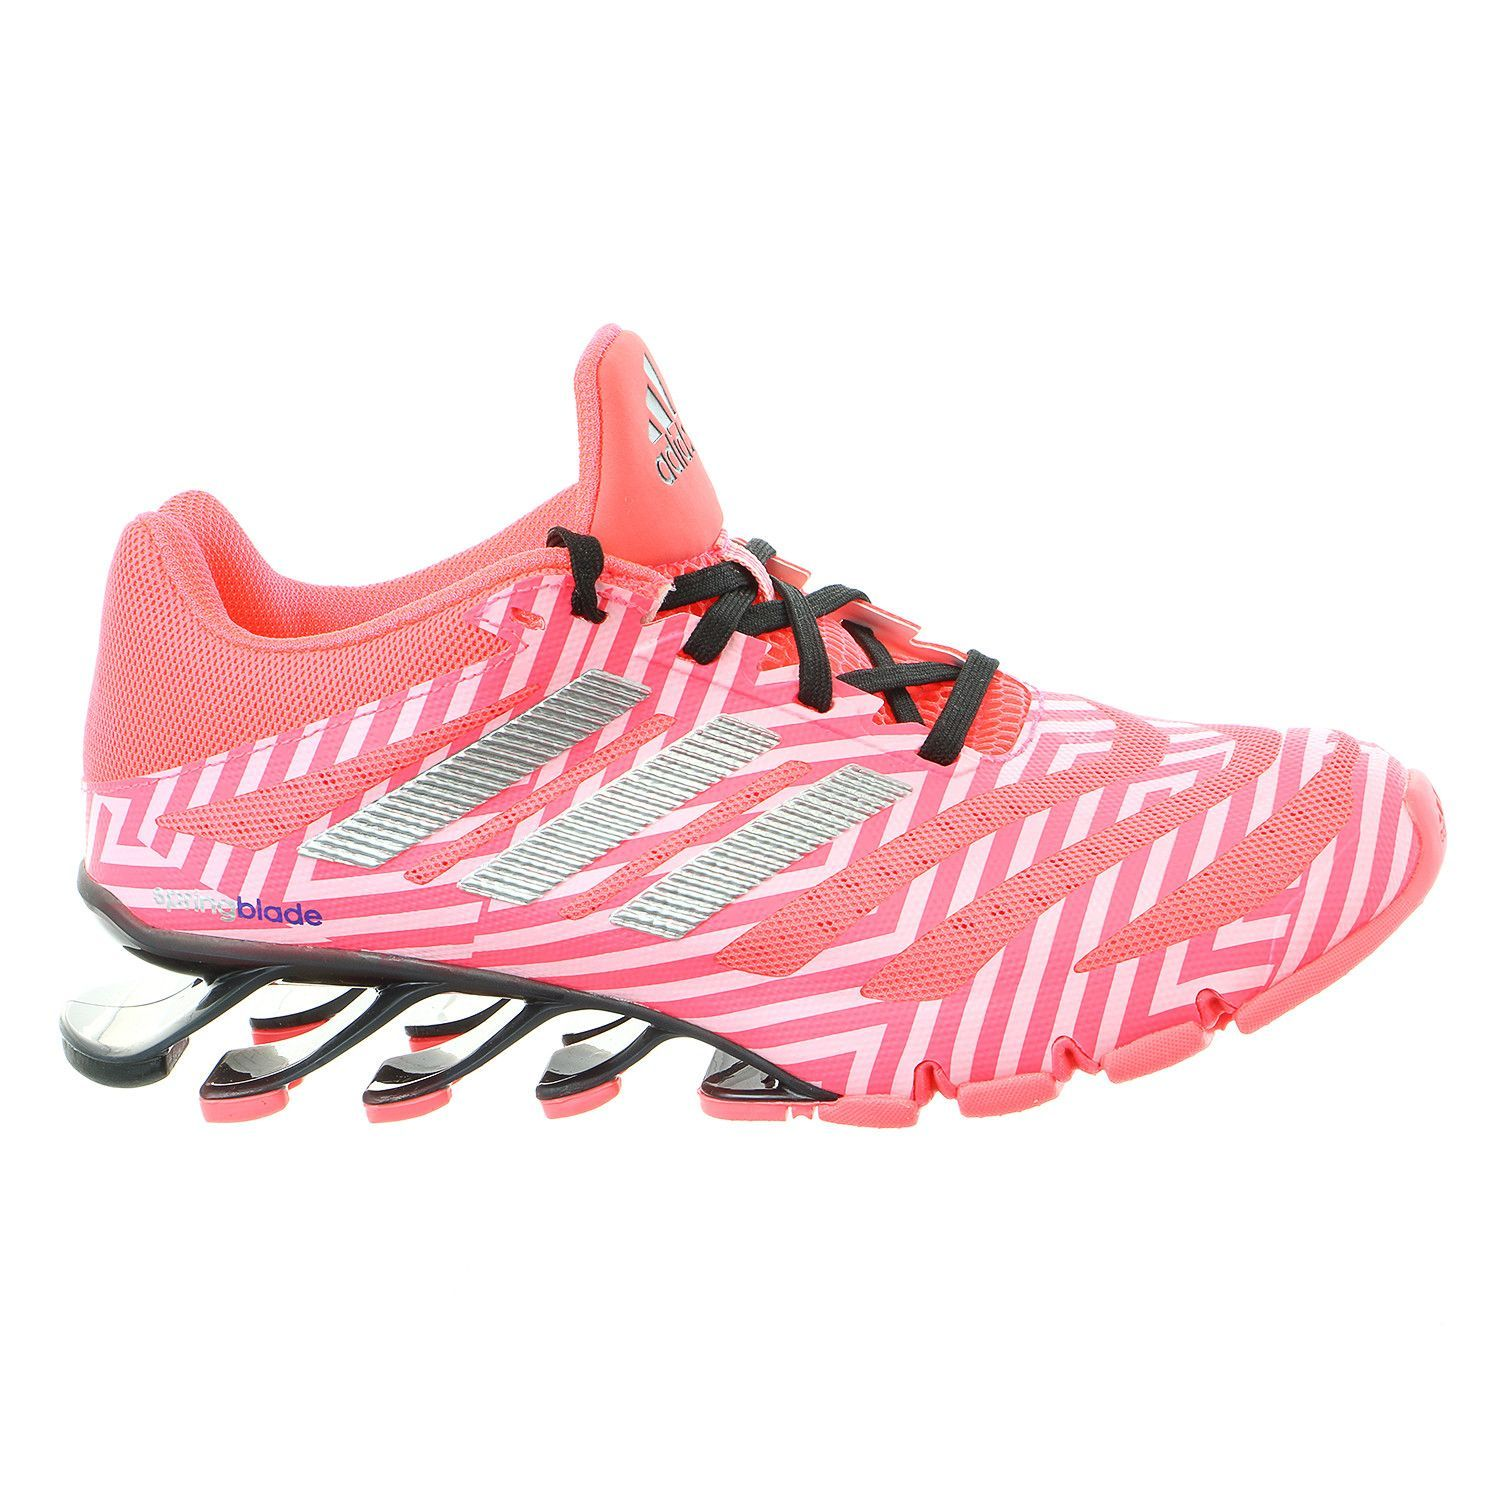 Adidas Mujeres Shoes Springblade Shoes Adidas Mujeres | 494ce16 - allergistofbrug.website